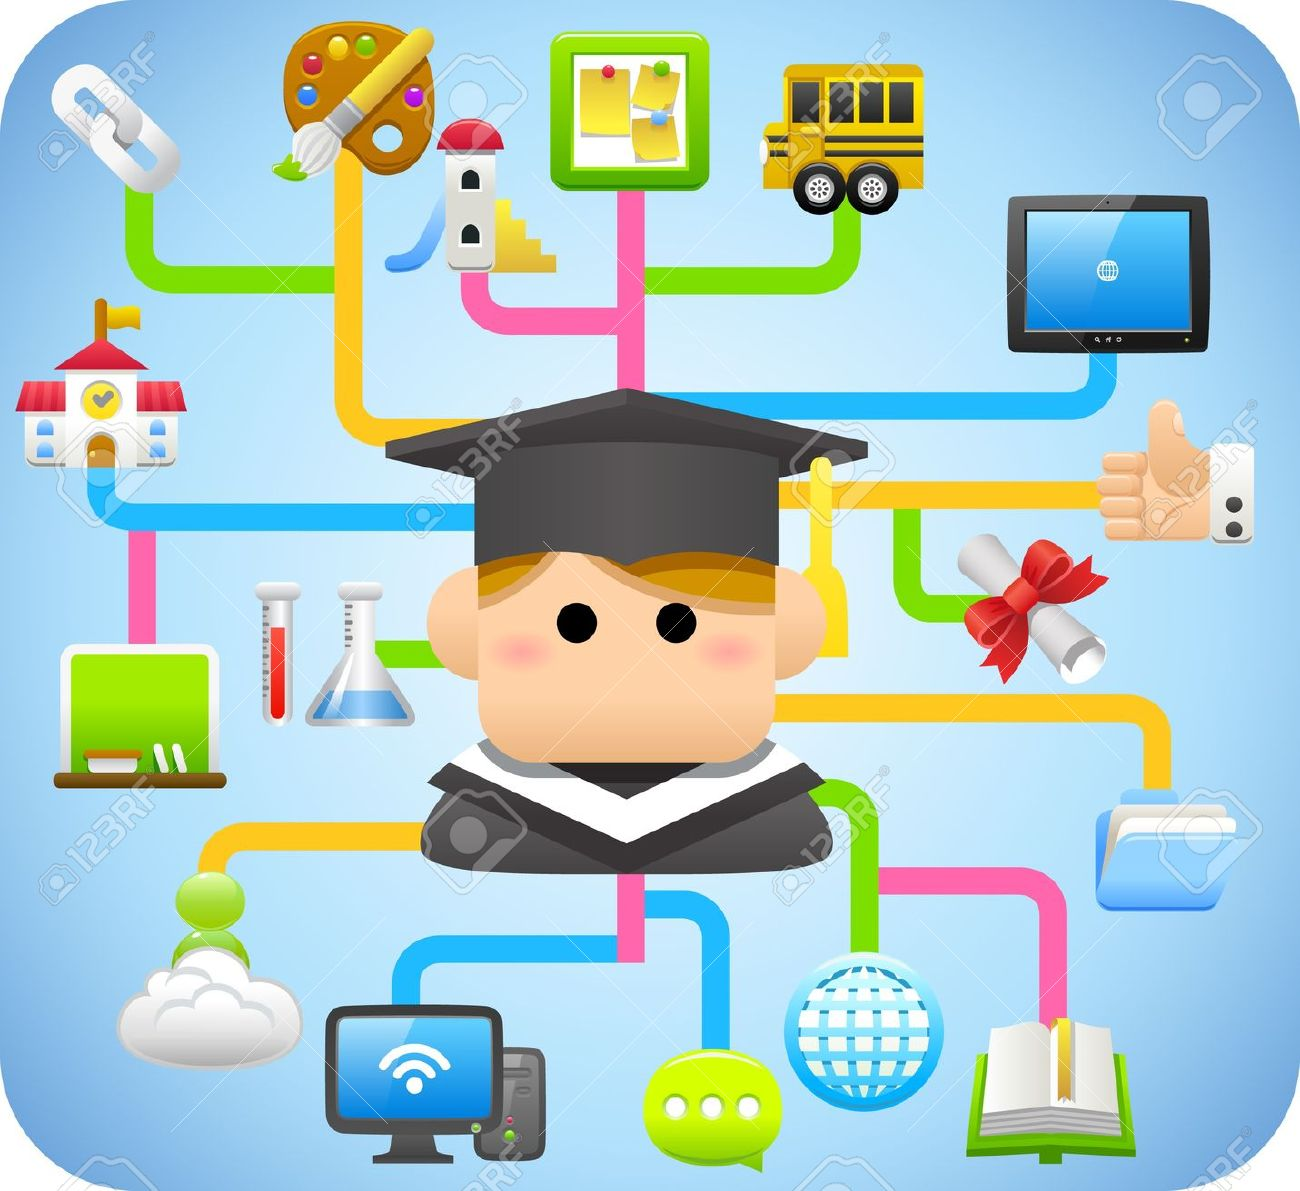 Technology clipart pc user Tumundografico Cliparting 5 2 technology